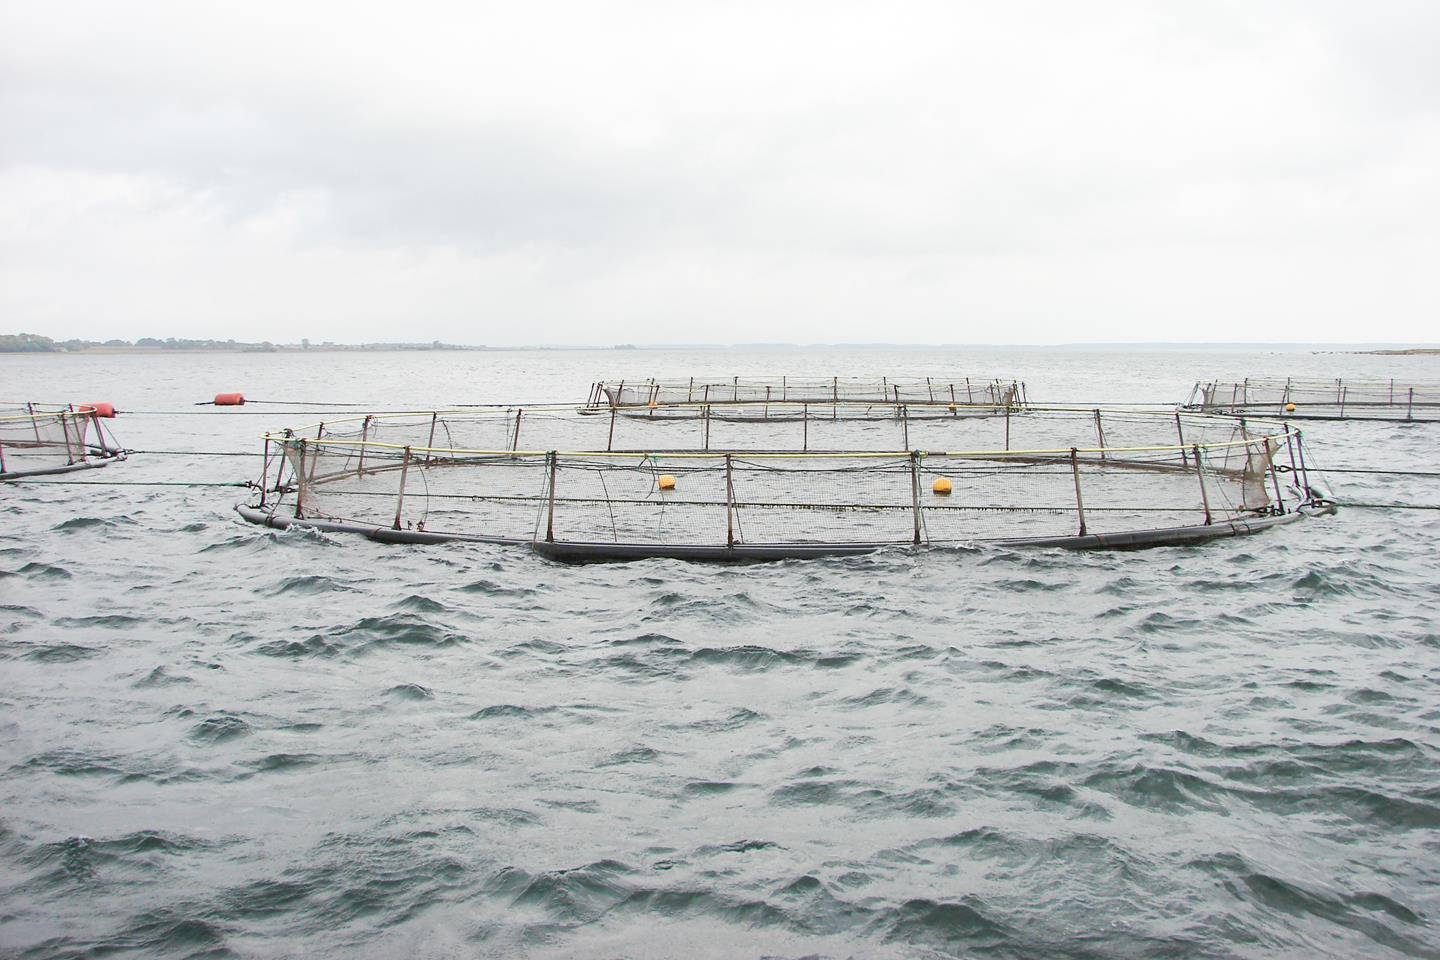 Even though food production in aquaculture is already sustainable, BioMar strives to further reduce the impacts on nature through constant development of our feeds.